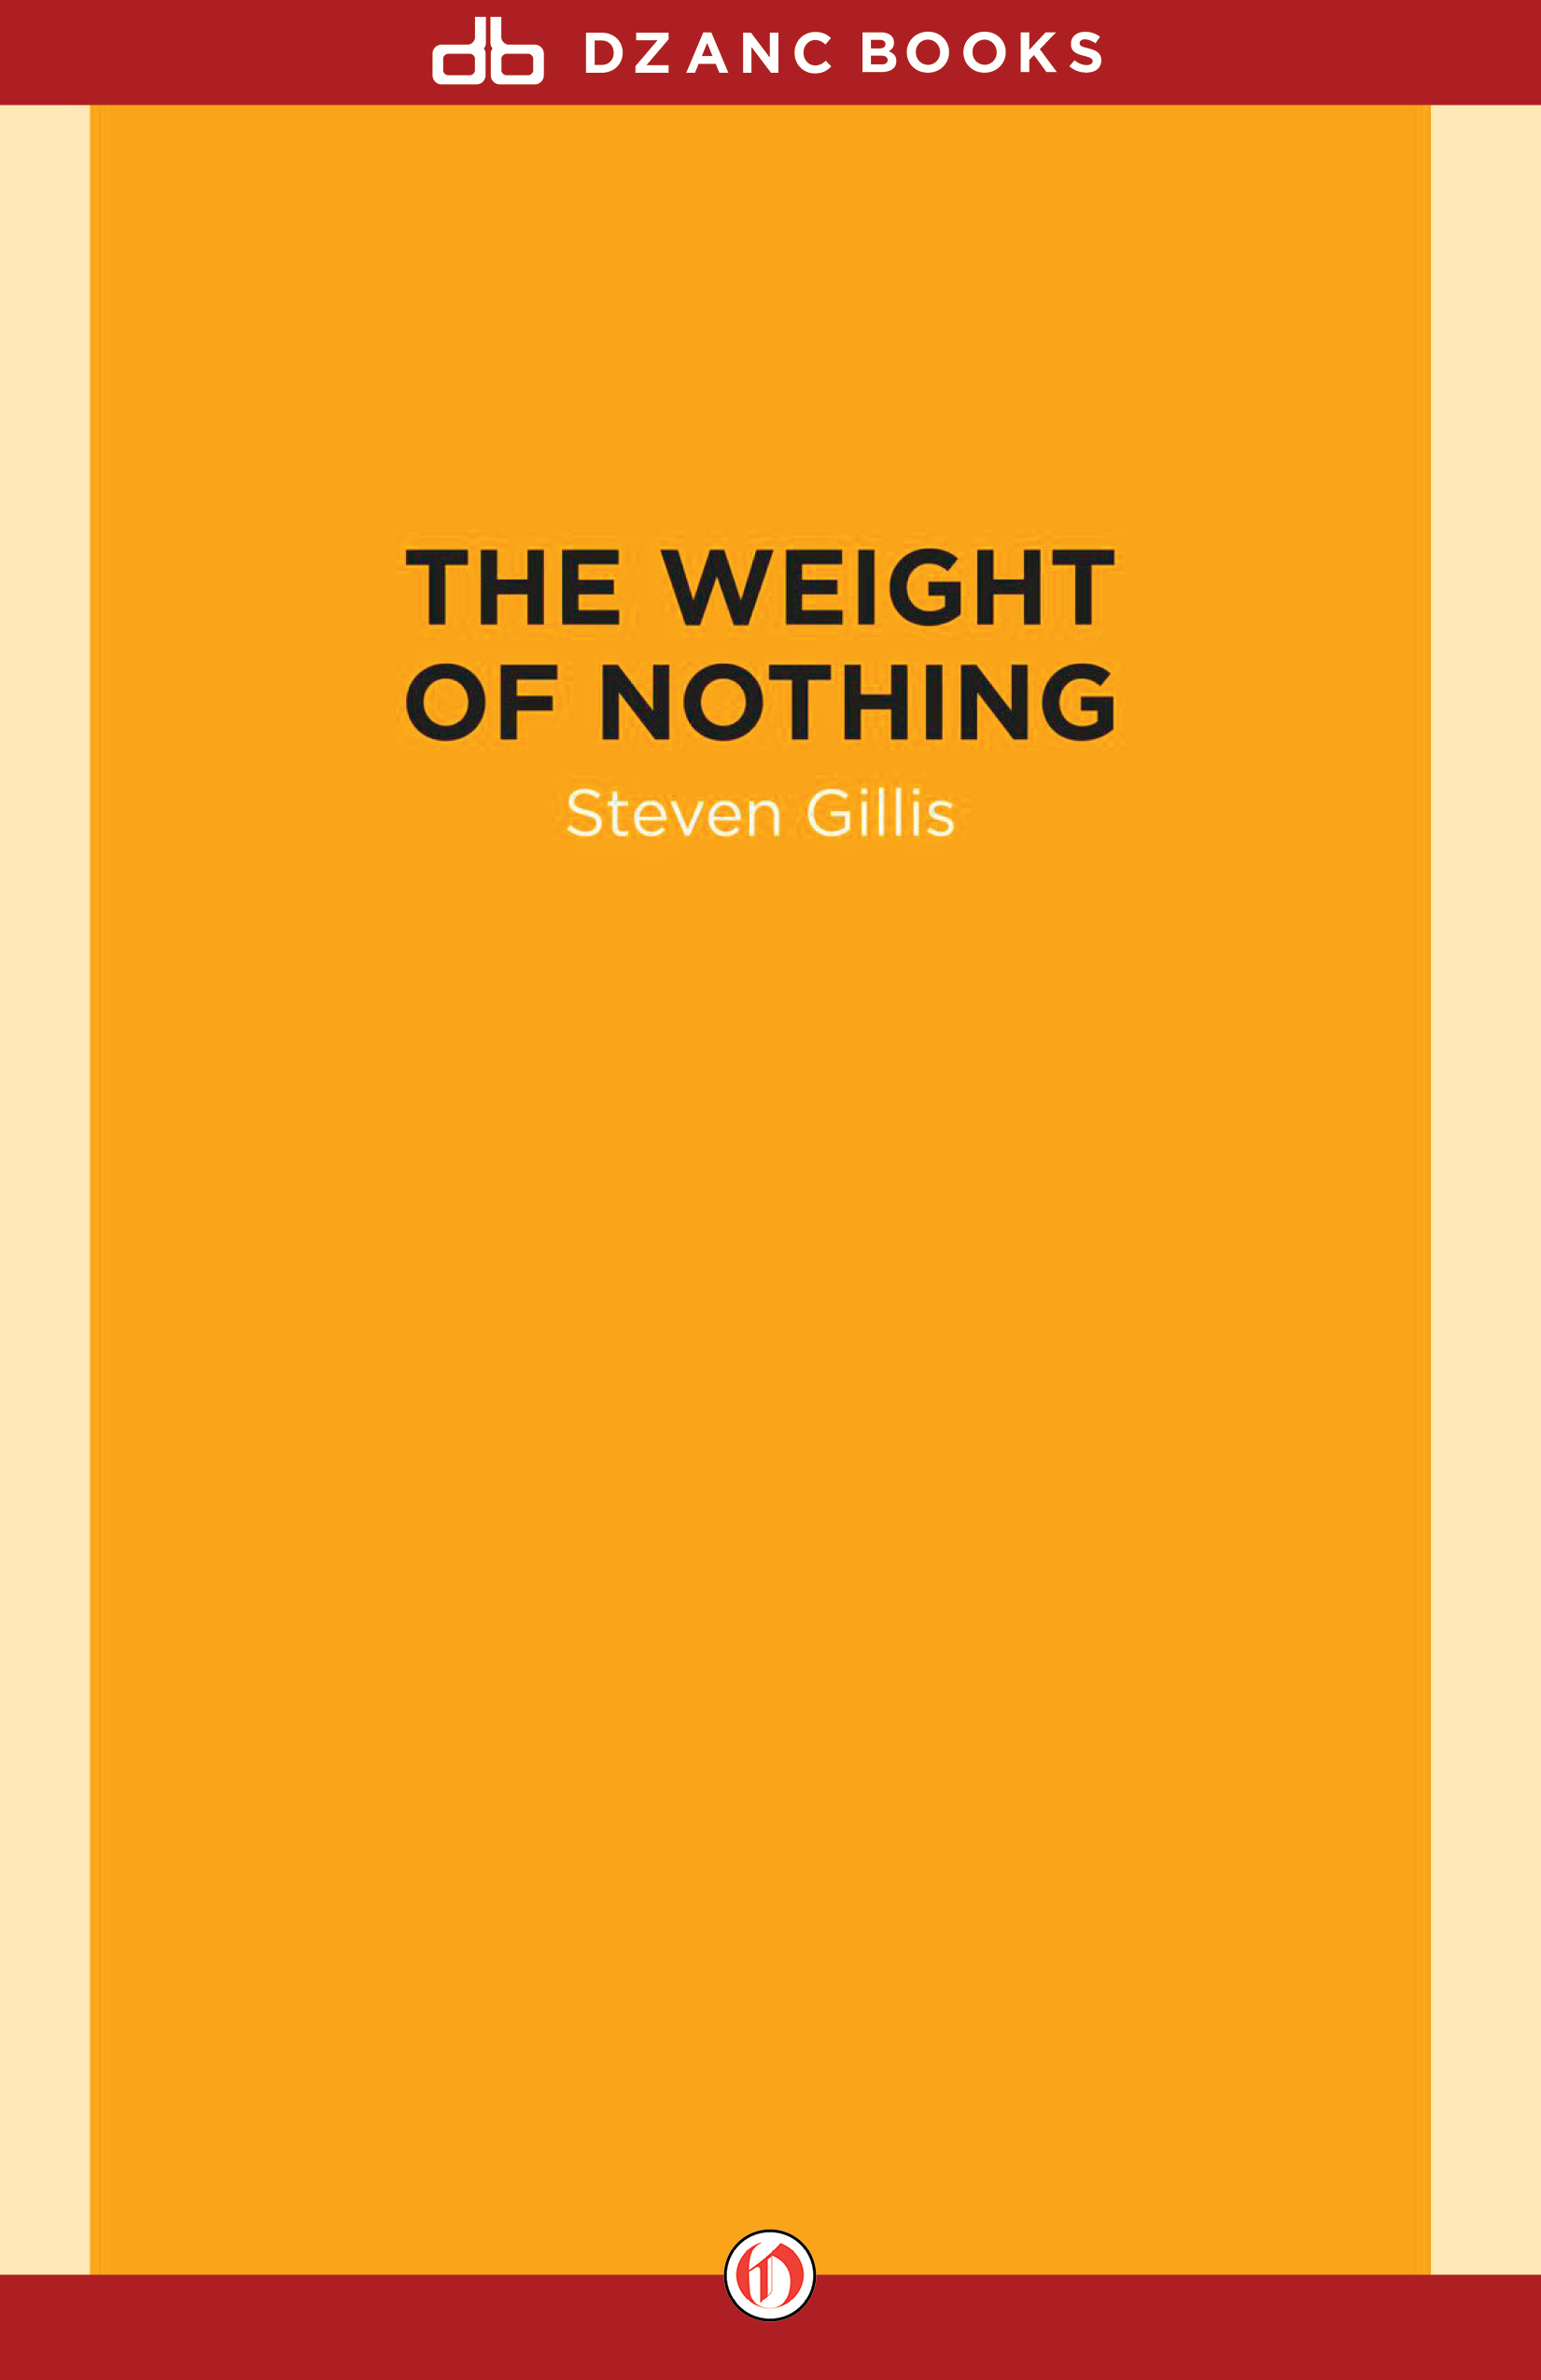 The Weight of Nothing